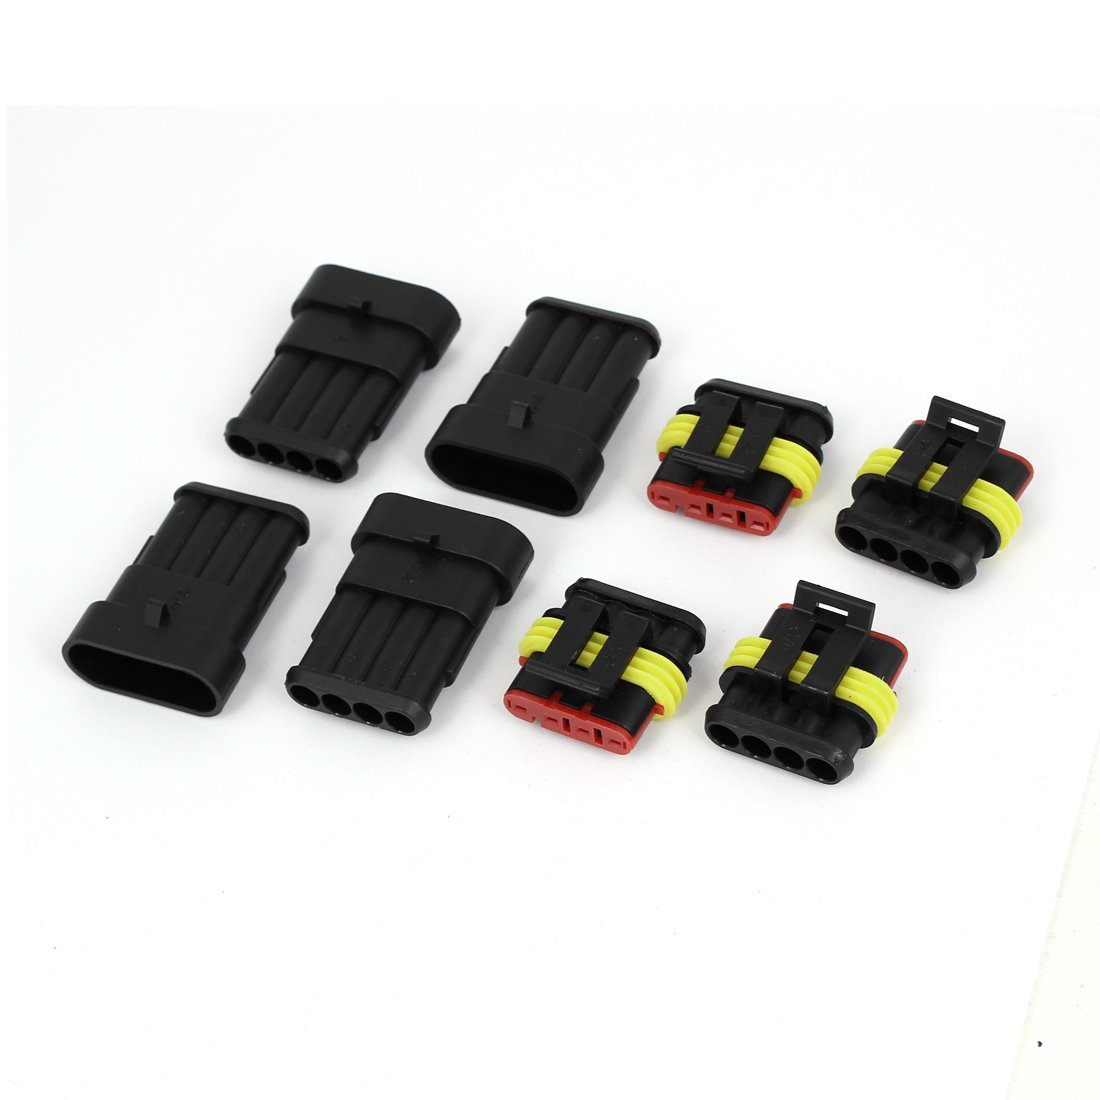 Amazon.com: eDealMax 4 pin conector impermeable manera automática Parte 4 Kit: Car Electronics